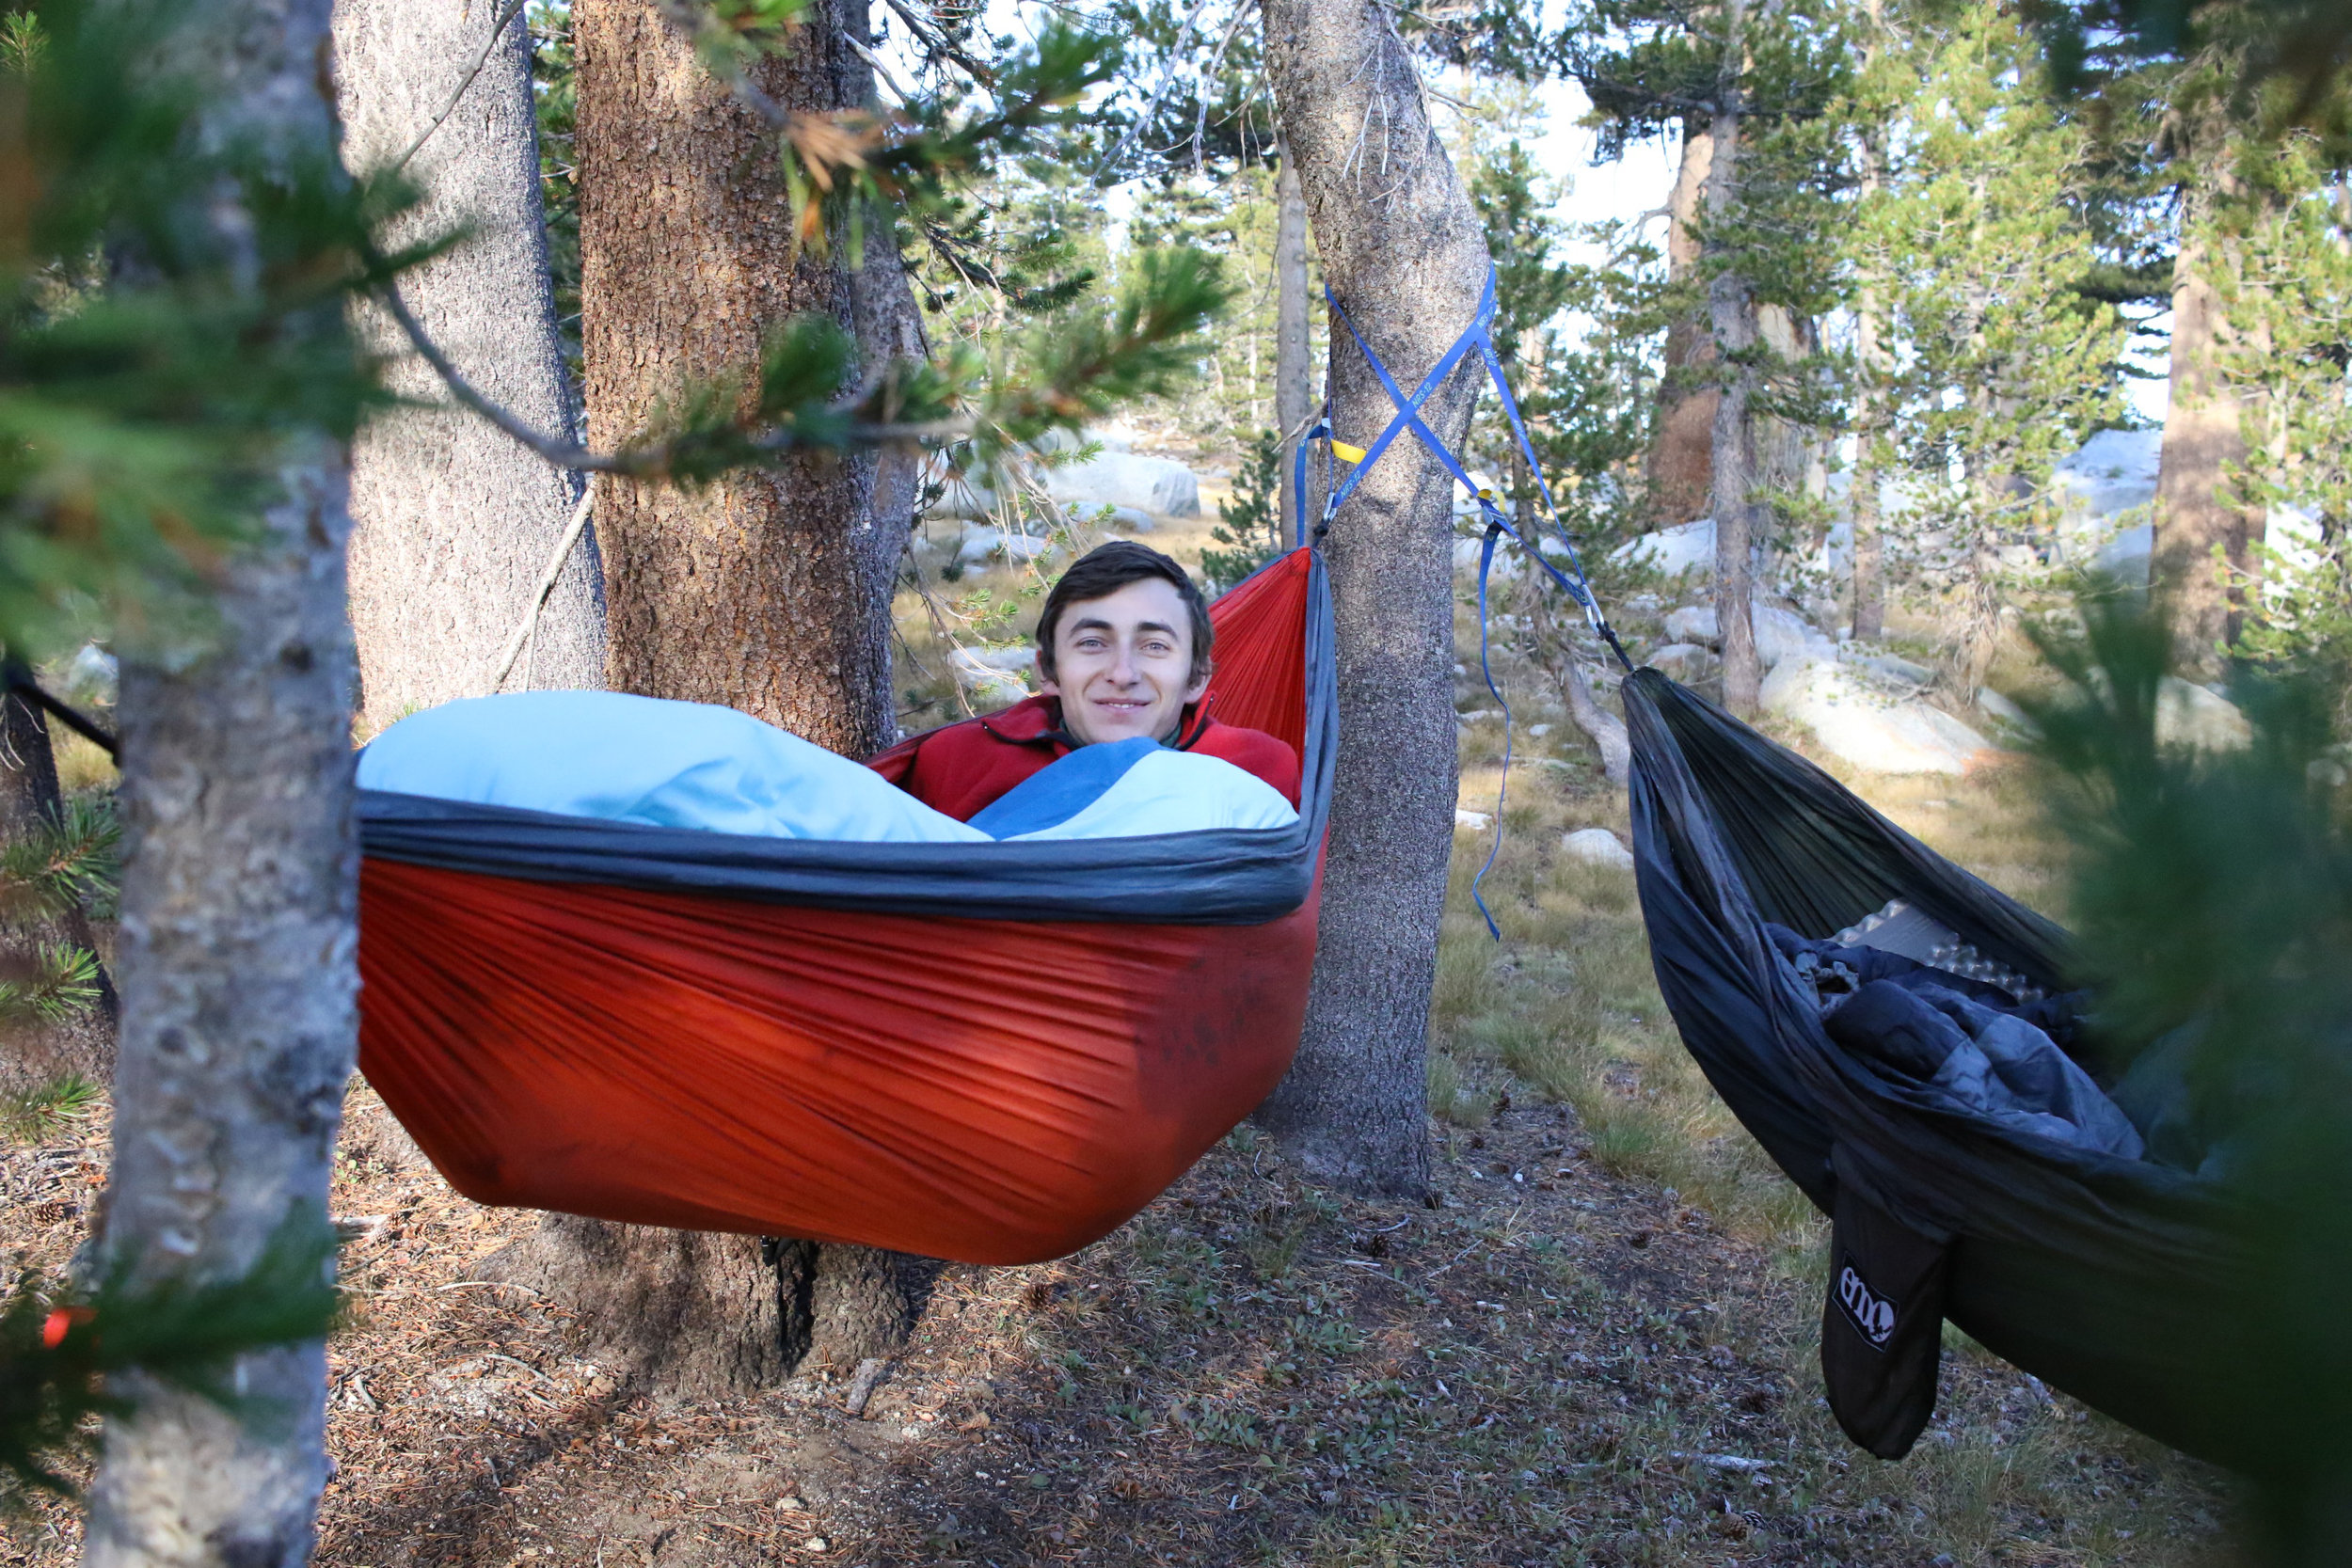 Sleeping as snug as a bug in a rug in our favorite place, nature :)